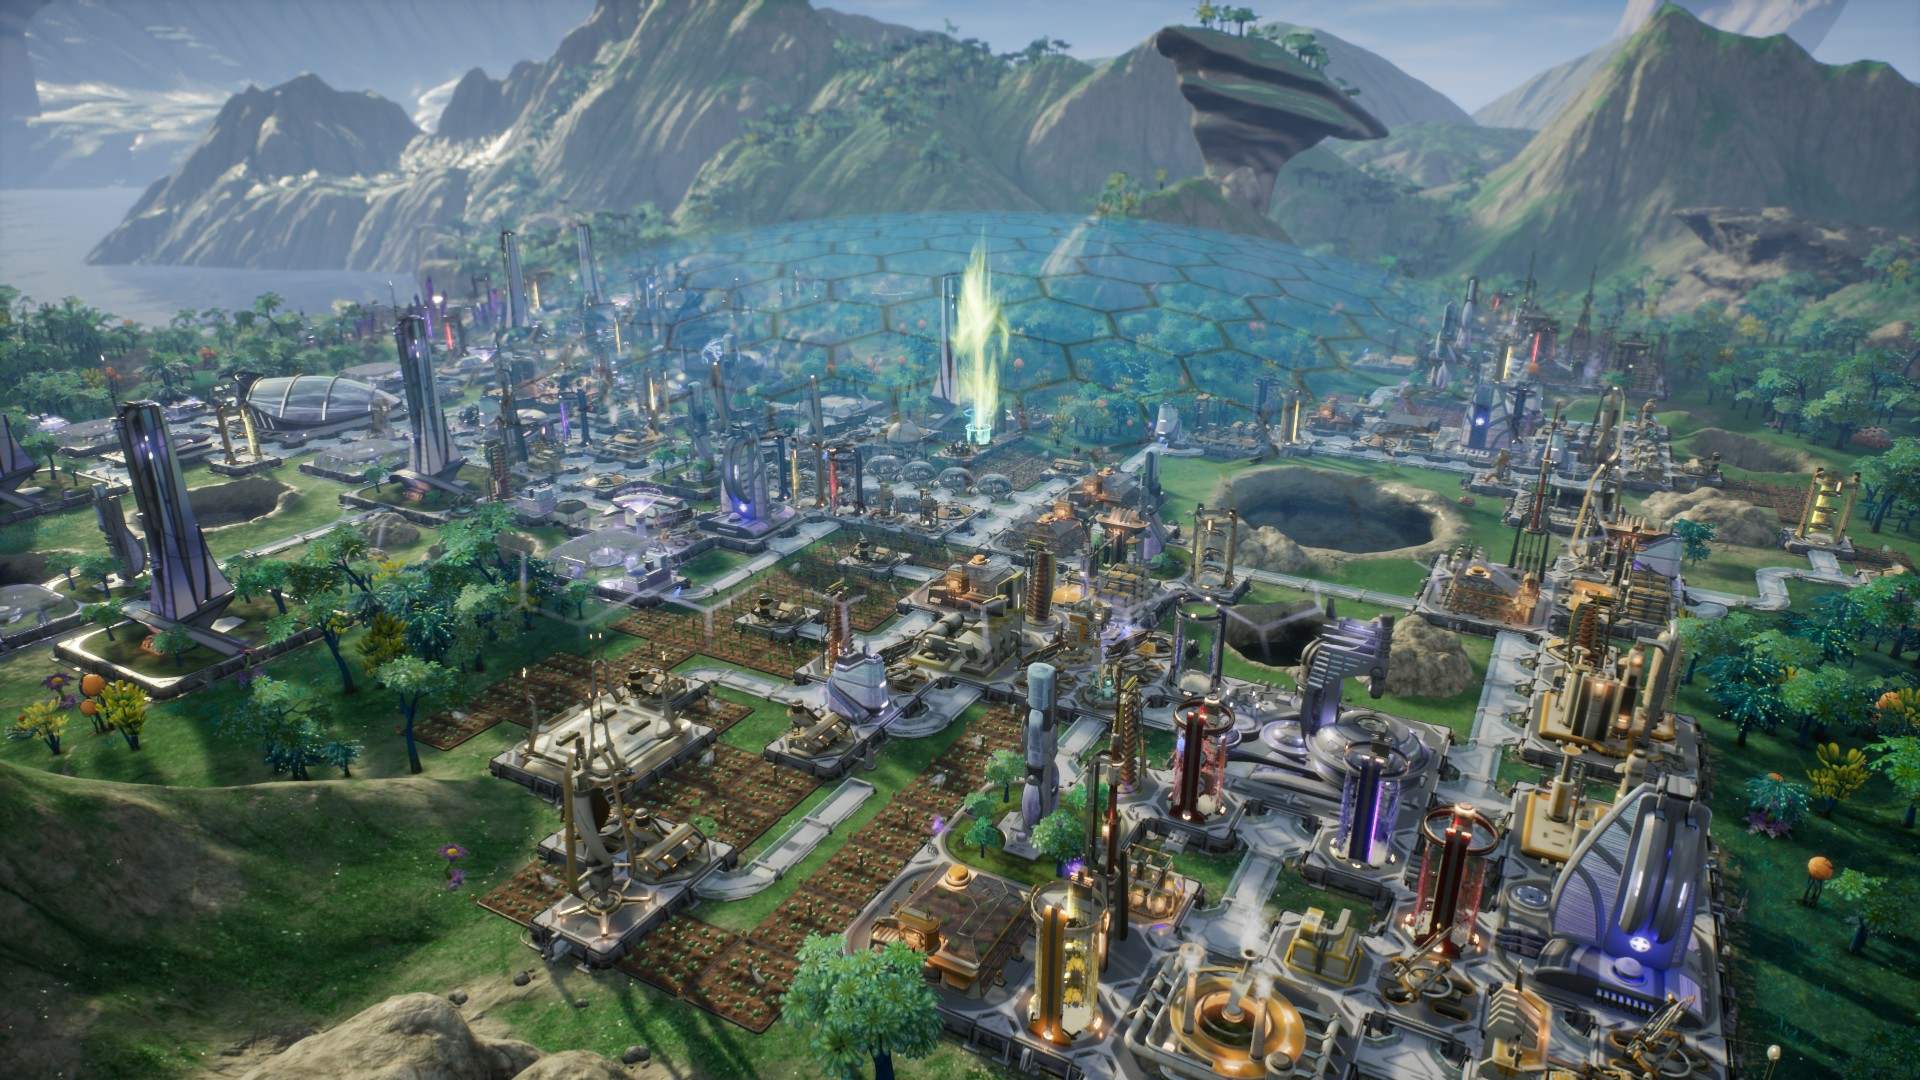 download aven colony inc. all dlcs and updates repack by corepack singlelink iso rar part kumpulbagi diskokosmiko